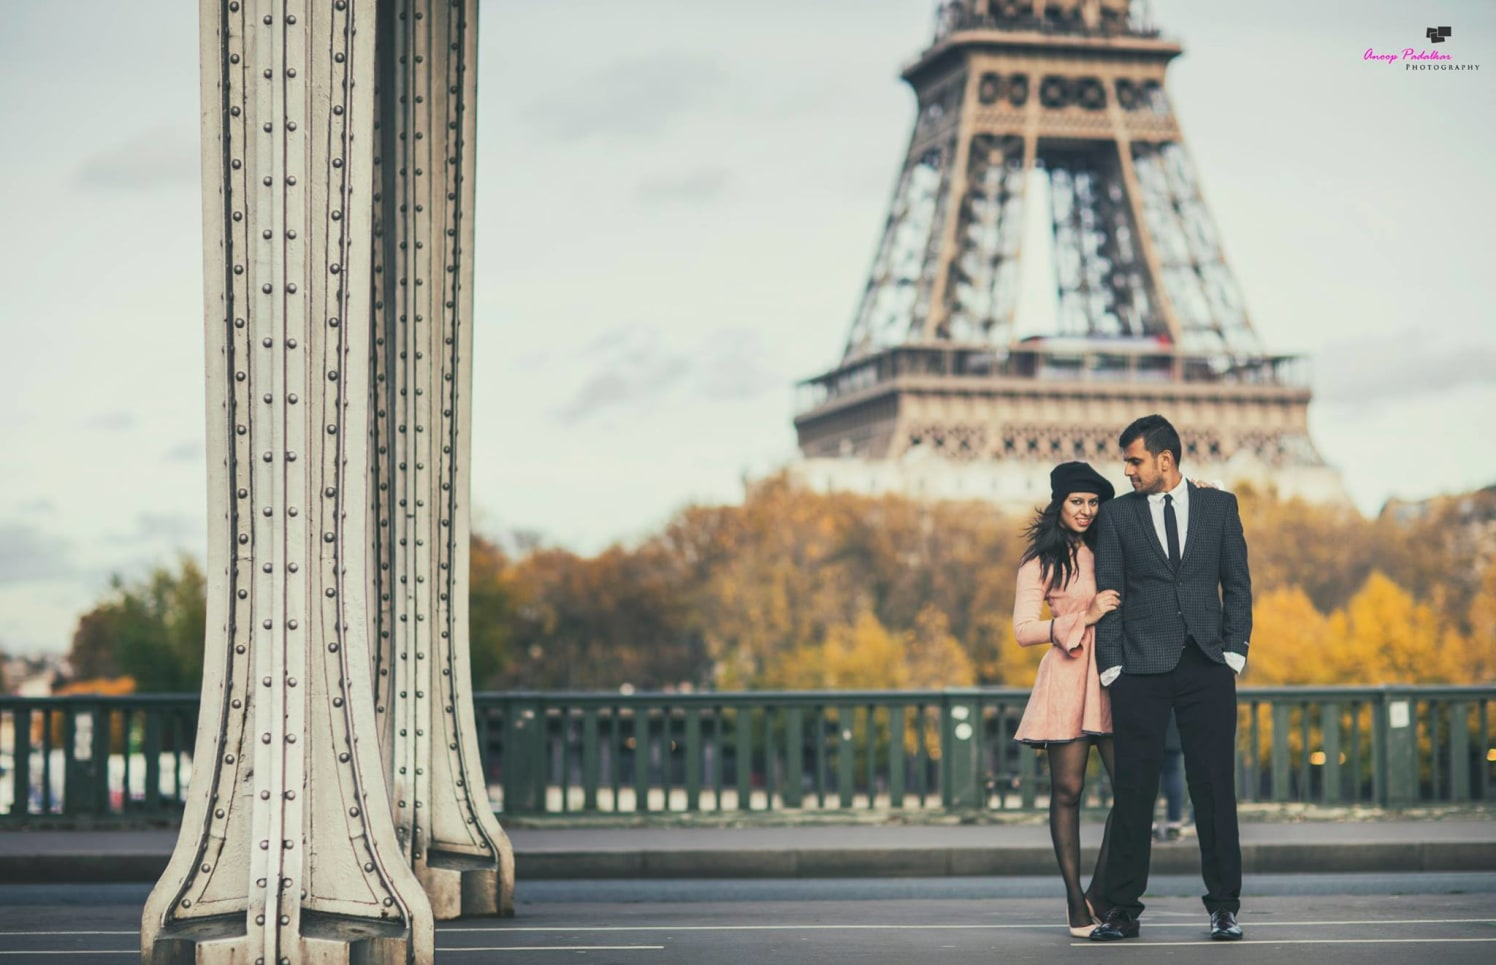 An evening in paris by Wedding Krafter Wedding-photography | Weddings Photos & Ideas